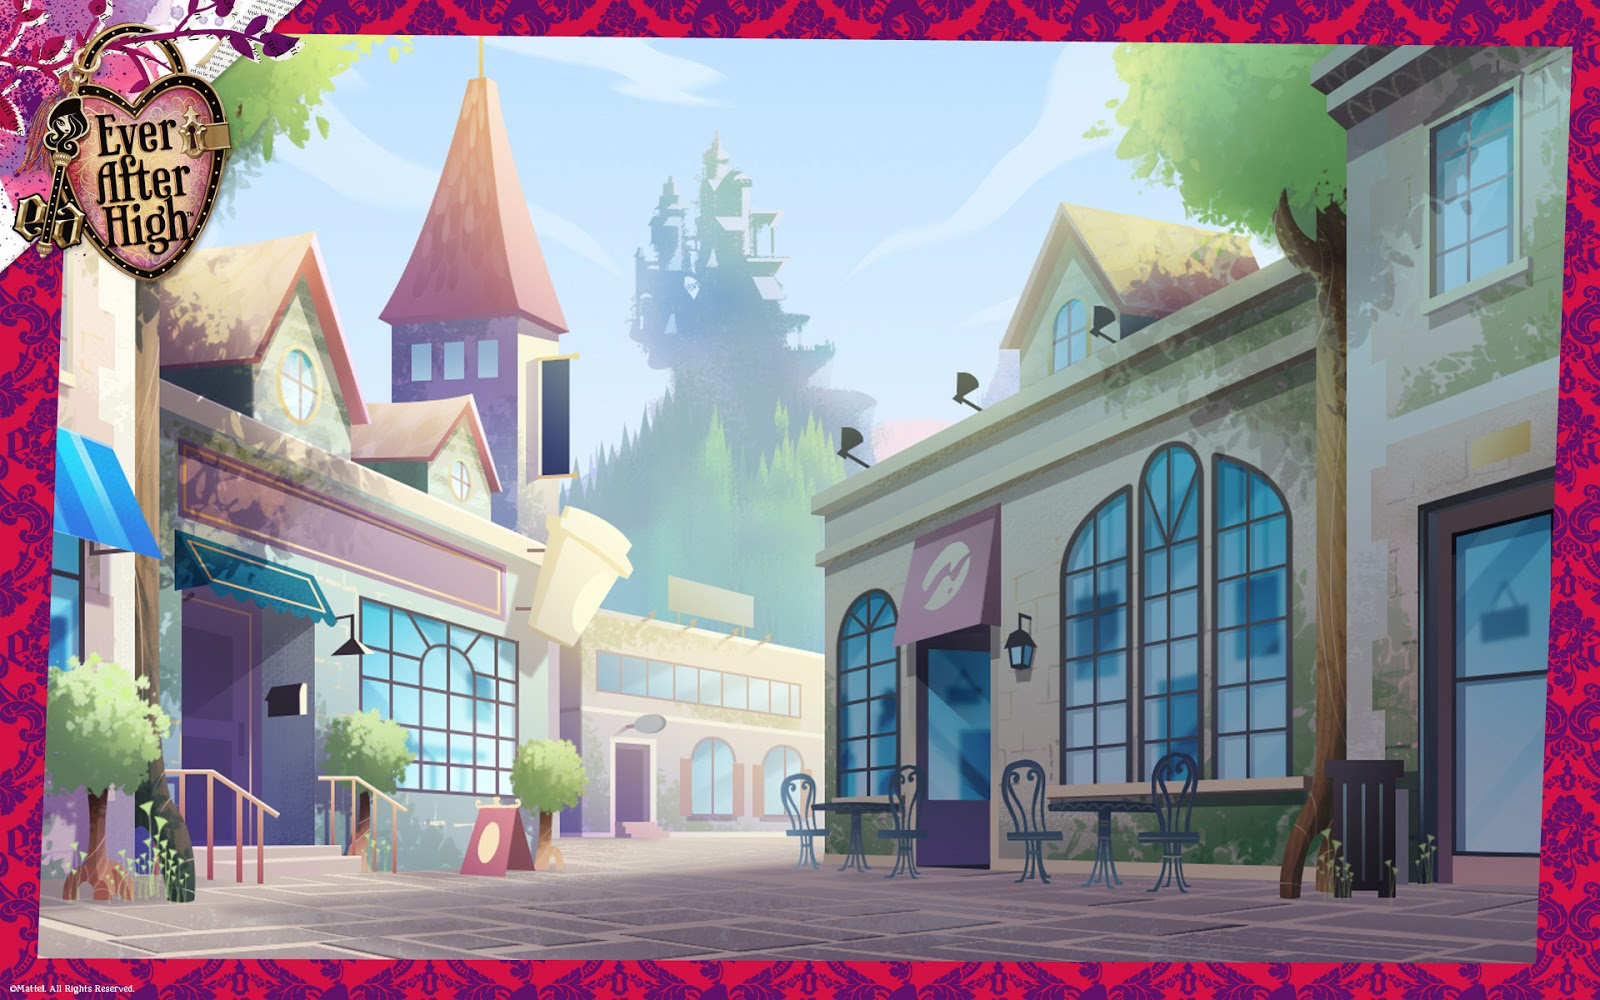 monsterhighdaily: ever after high wallpapers